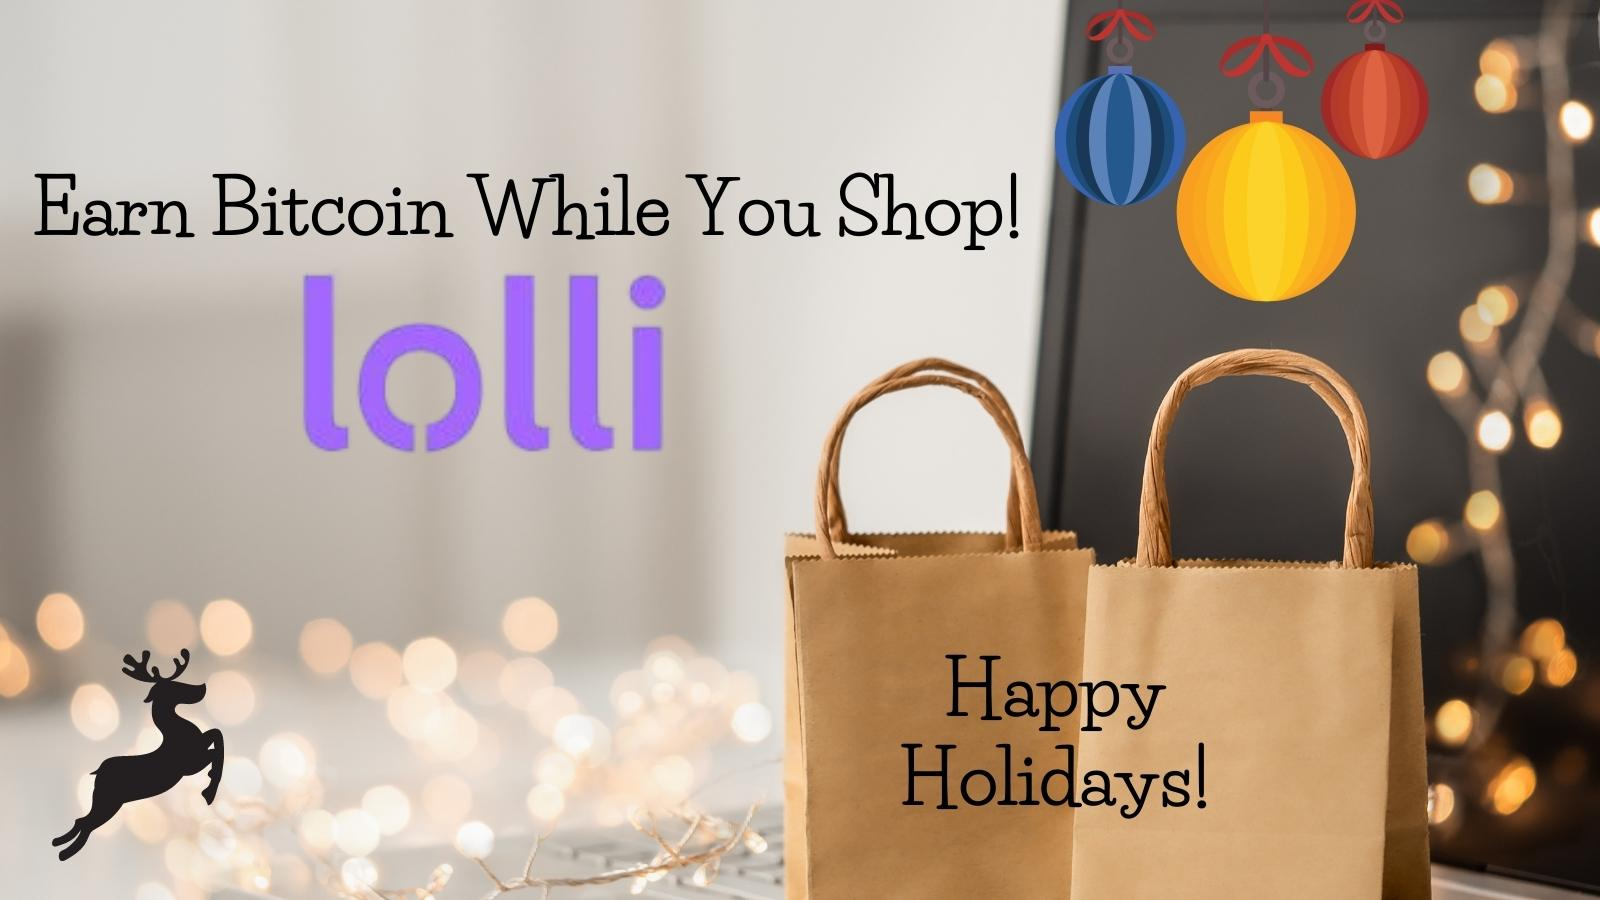 Earn bitcoin while you shop with Lolli